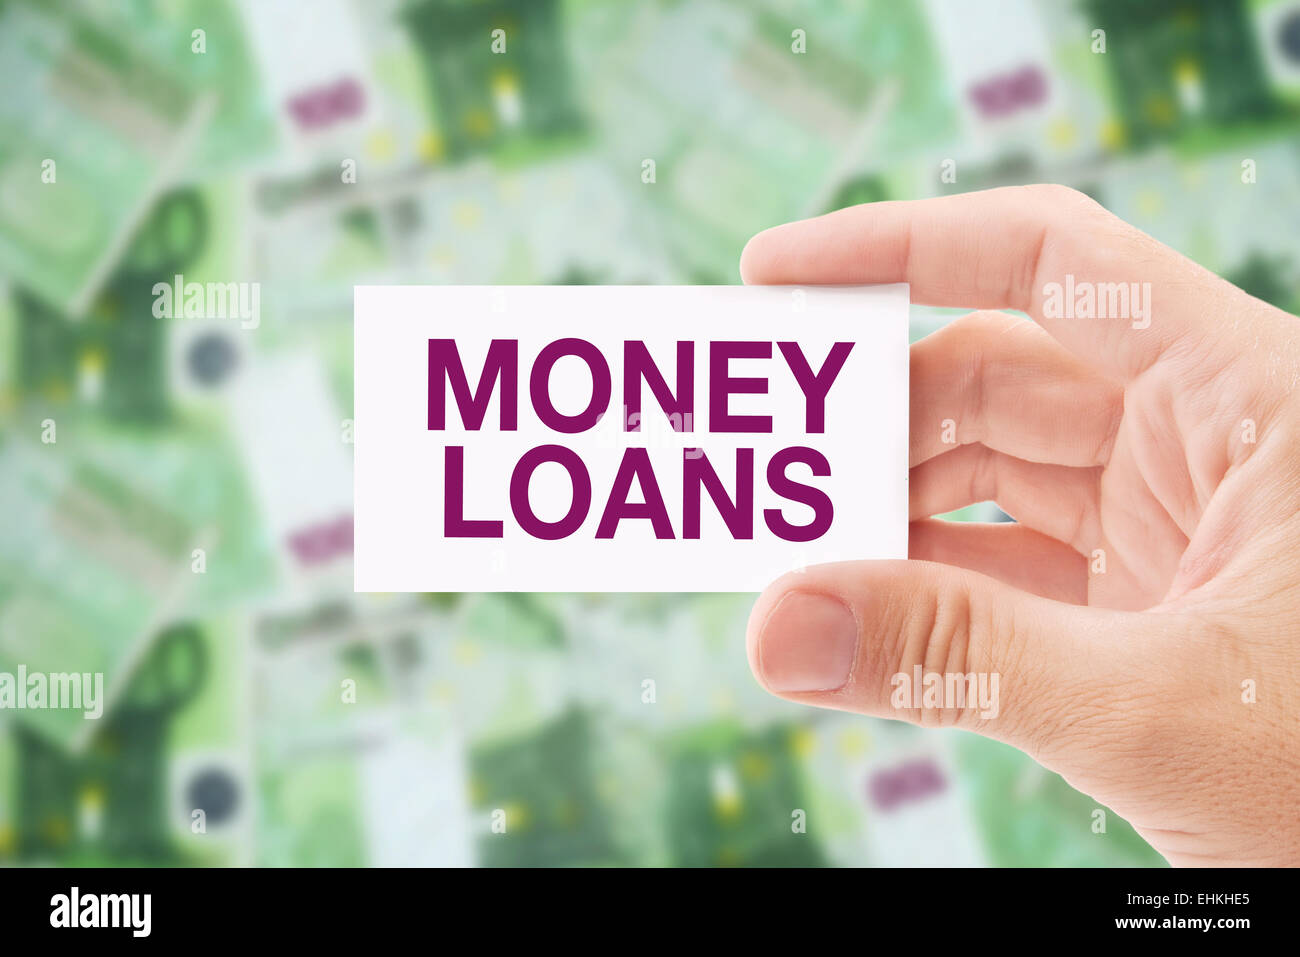 Man Holding Business Card with Money Loan Title, Euro Banknotes Pile ...